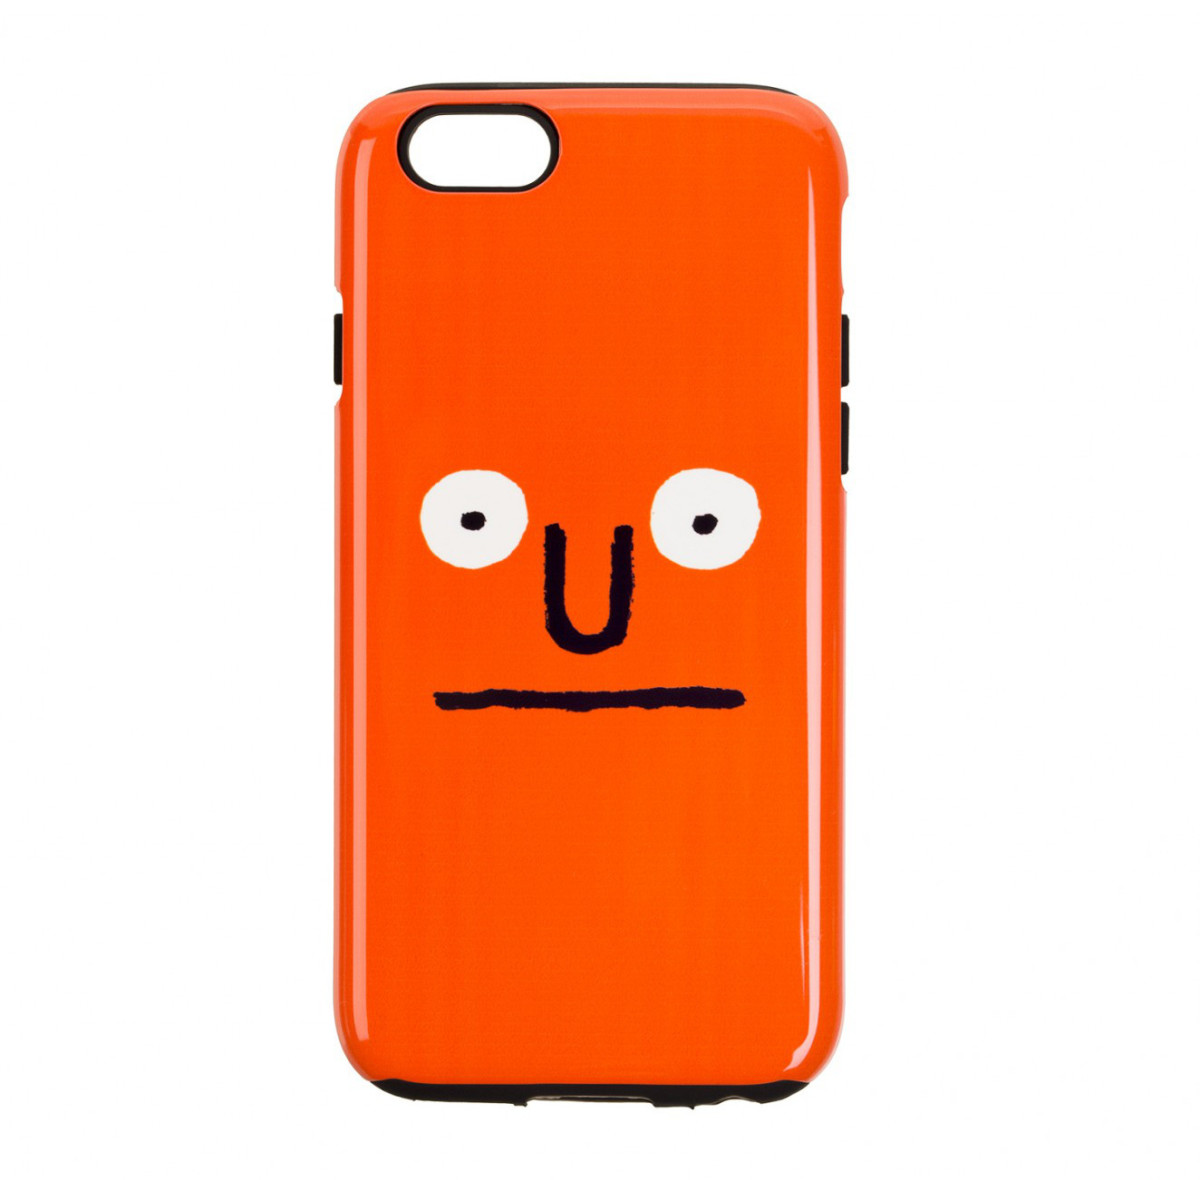 stereo-vinyls-jean-jullien-iphone-case.jpg